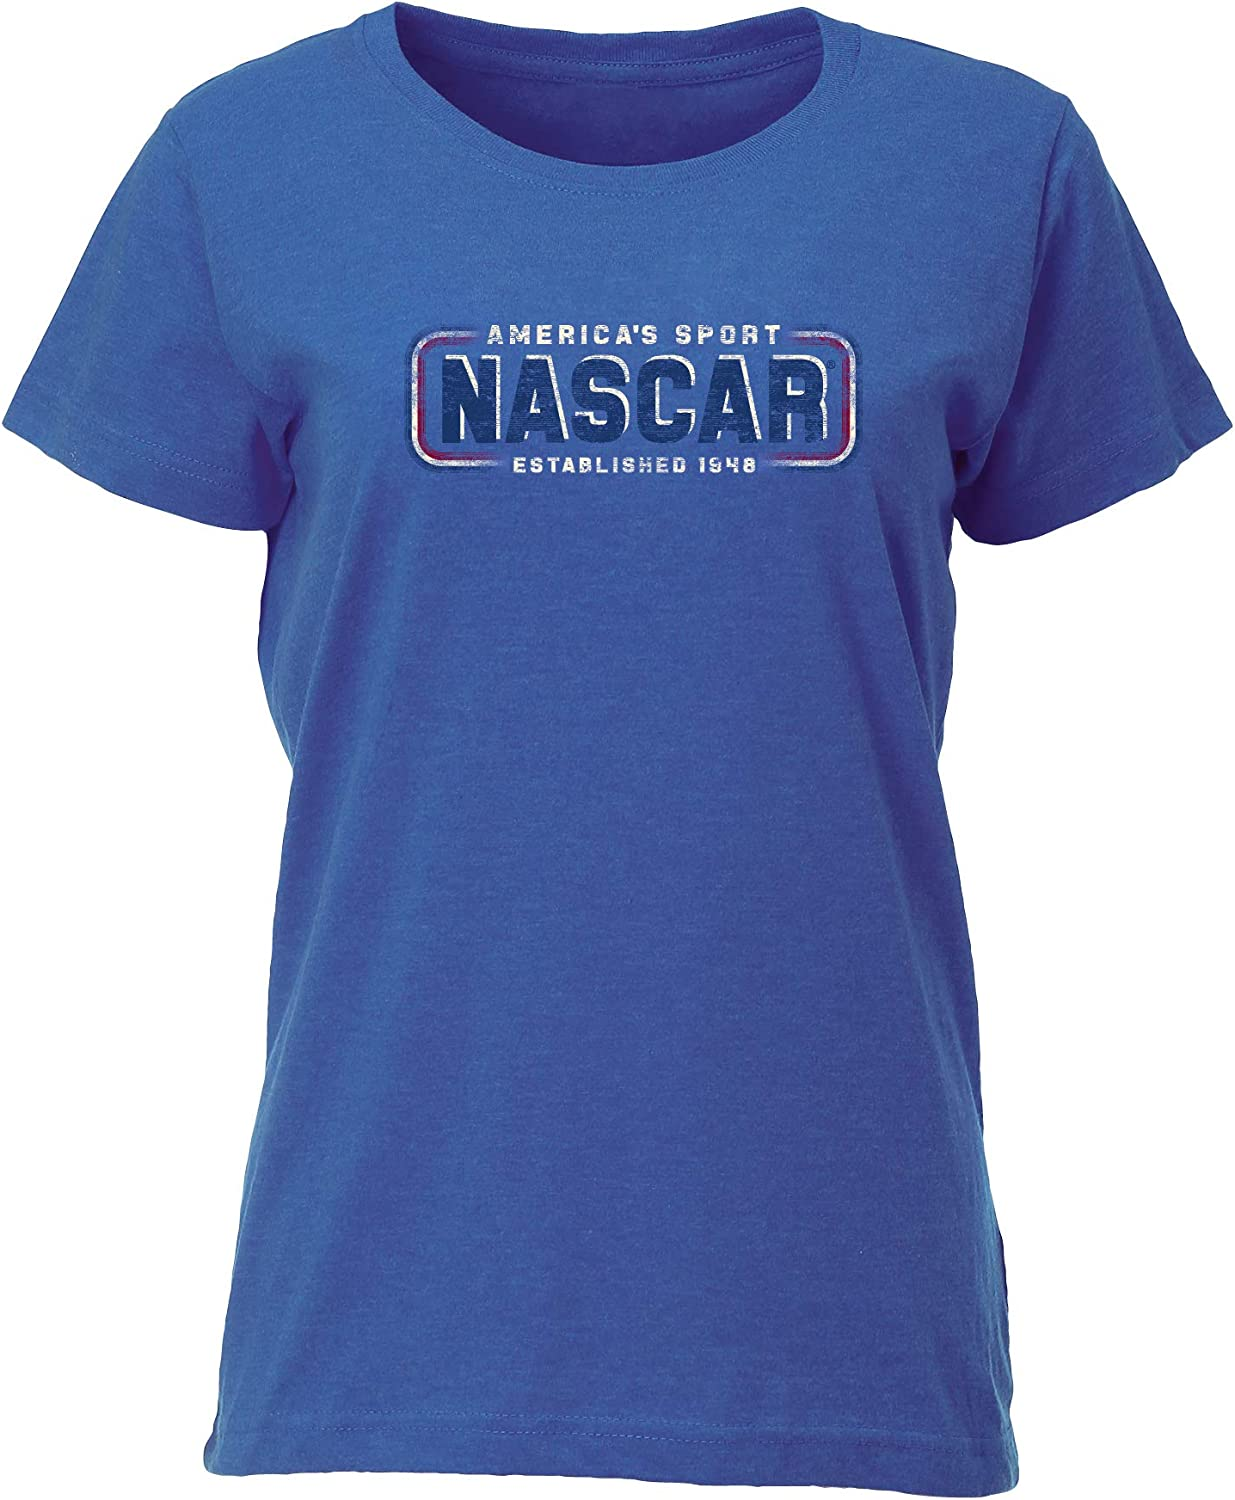 Ouray Sportswear NASCAR Womens W Vintage Blend Relaxed Fit S//S T NASCAR Small Vintage Royal